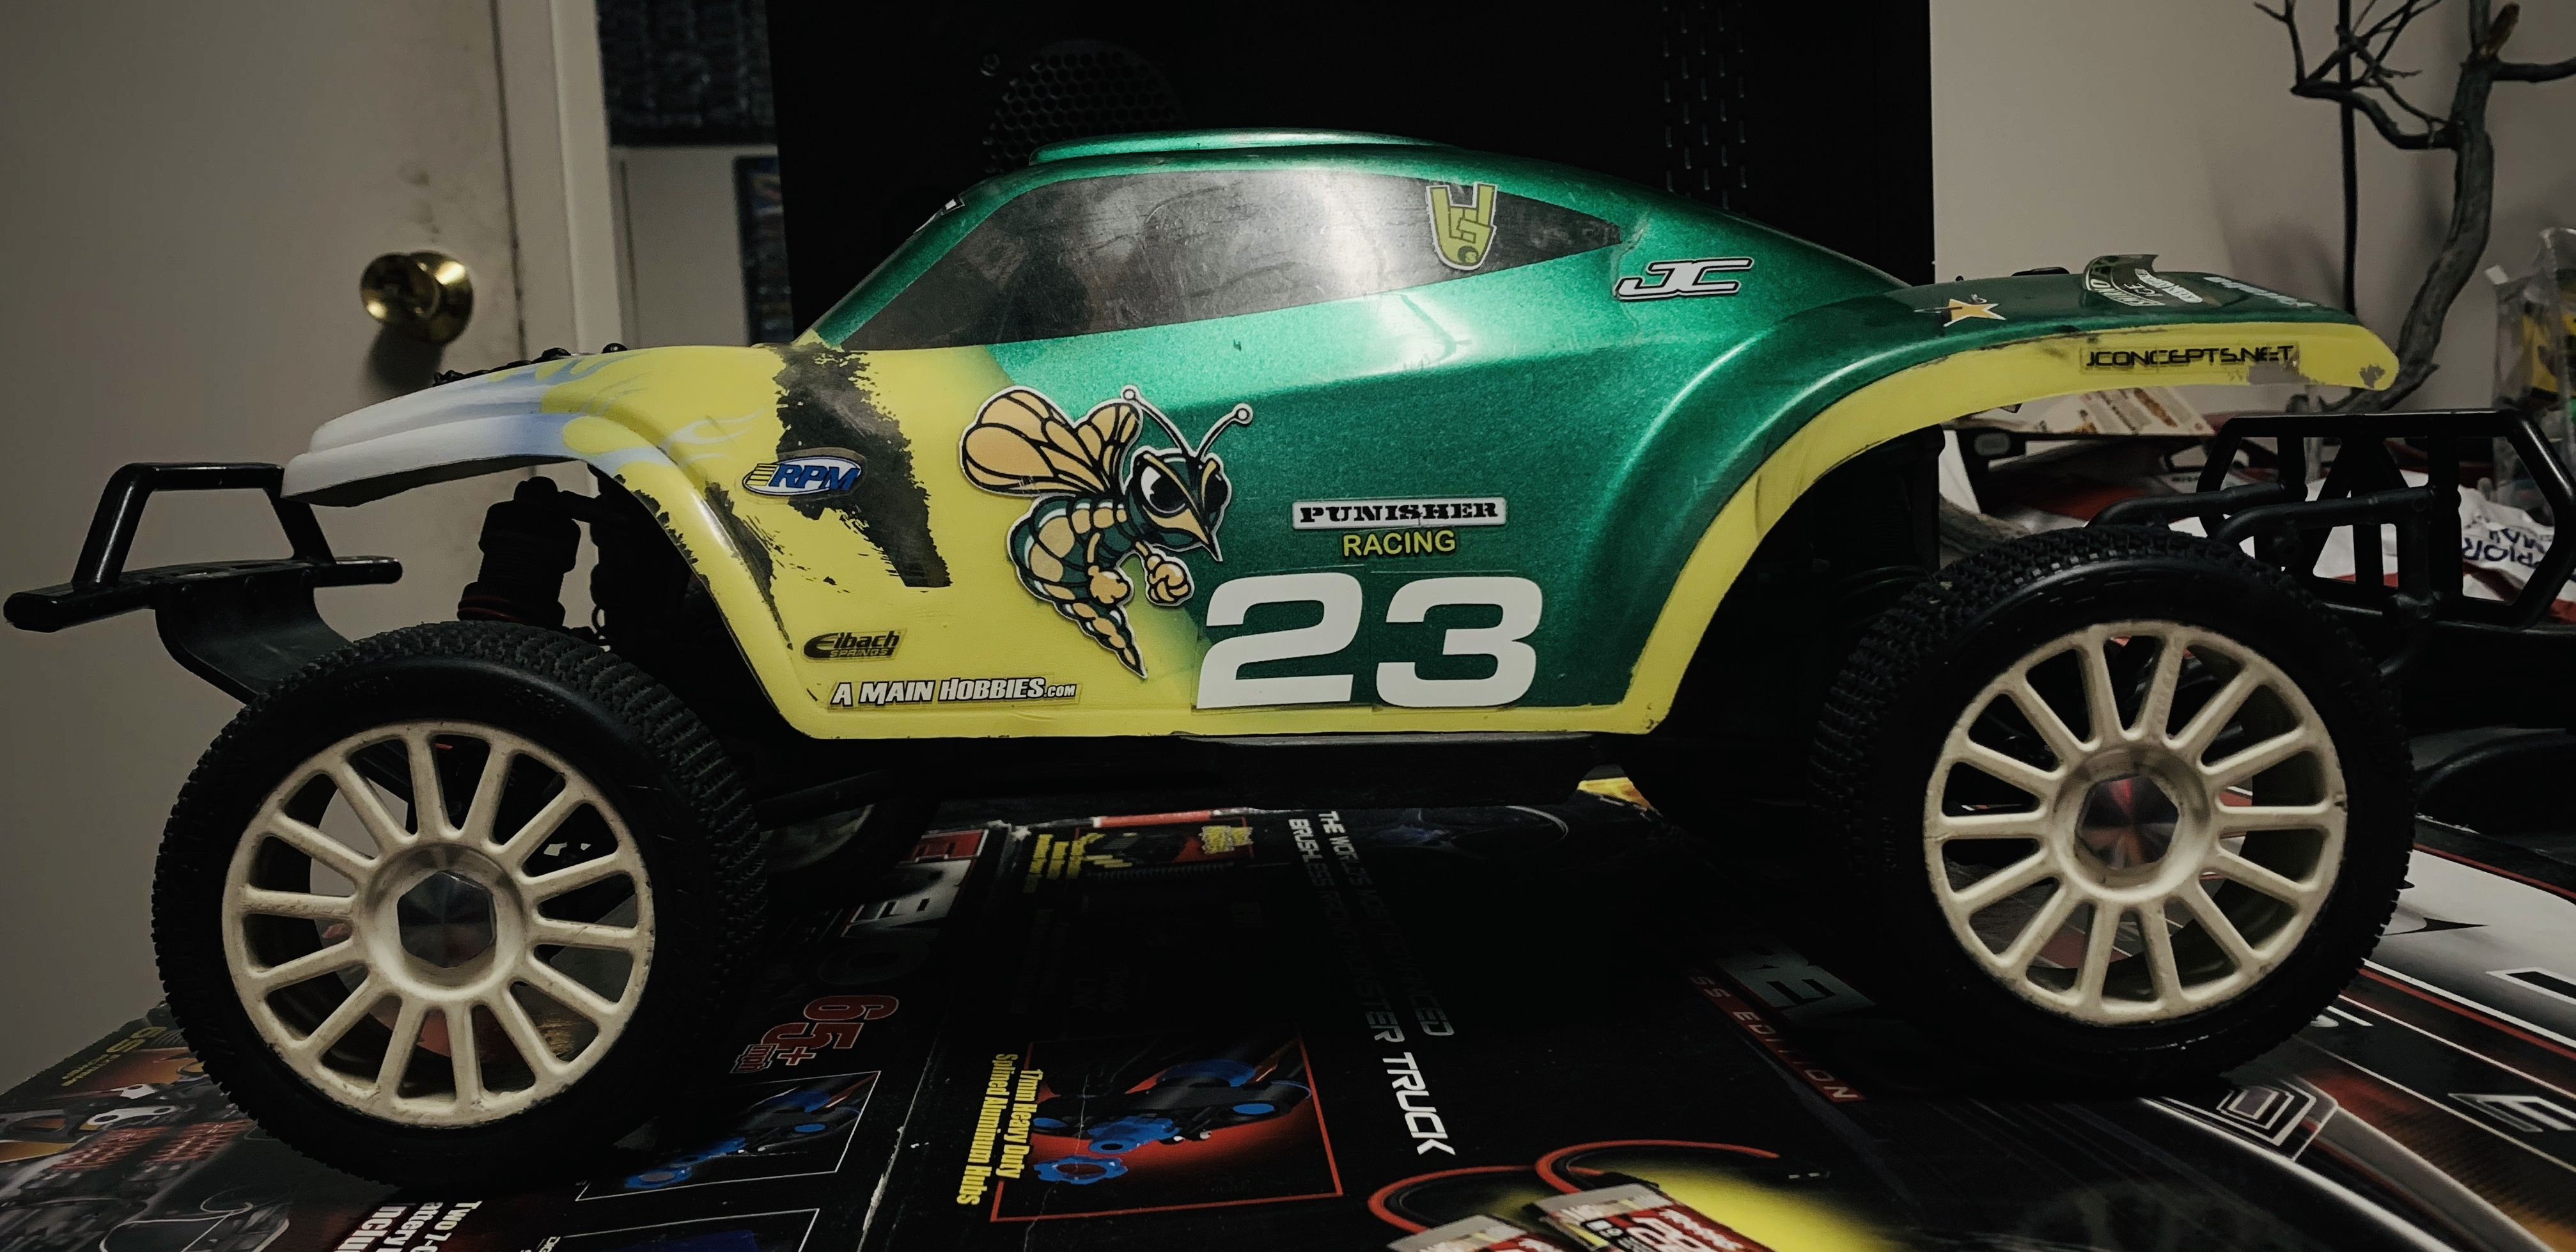 Pin By Big Cisco On Rc Cars Monster Trucks Antique Cars Rc Cars [ 1958 x 4029 Pixel ]